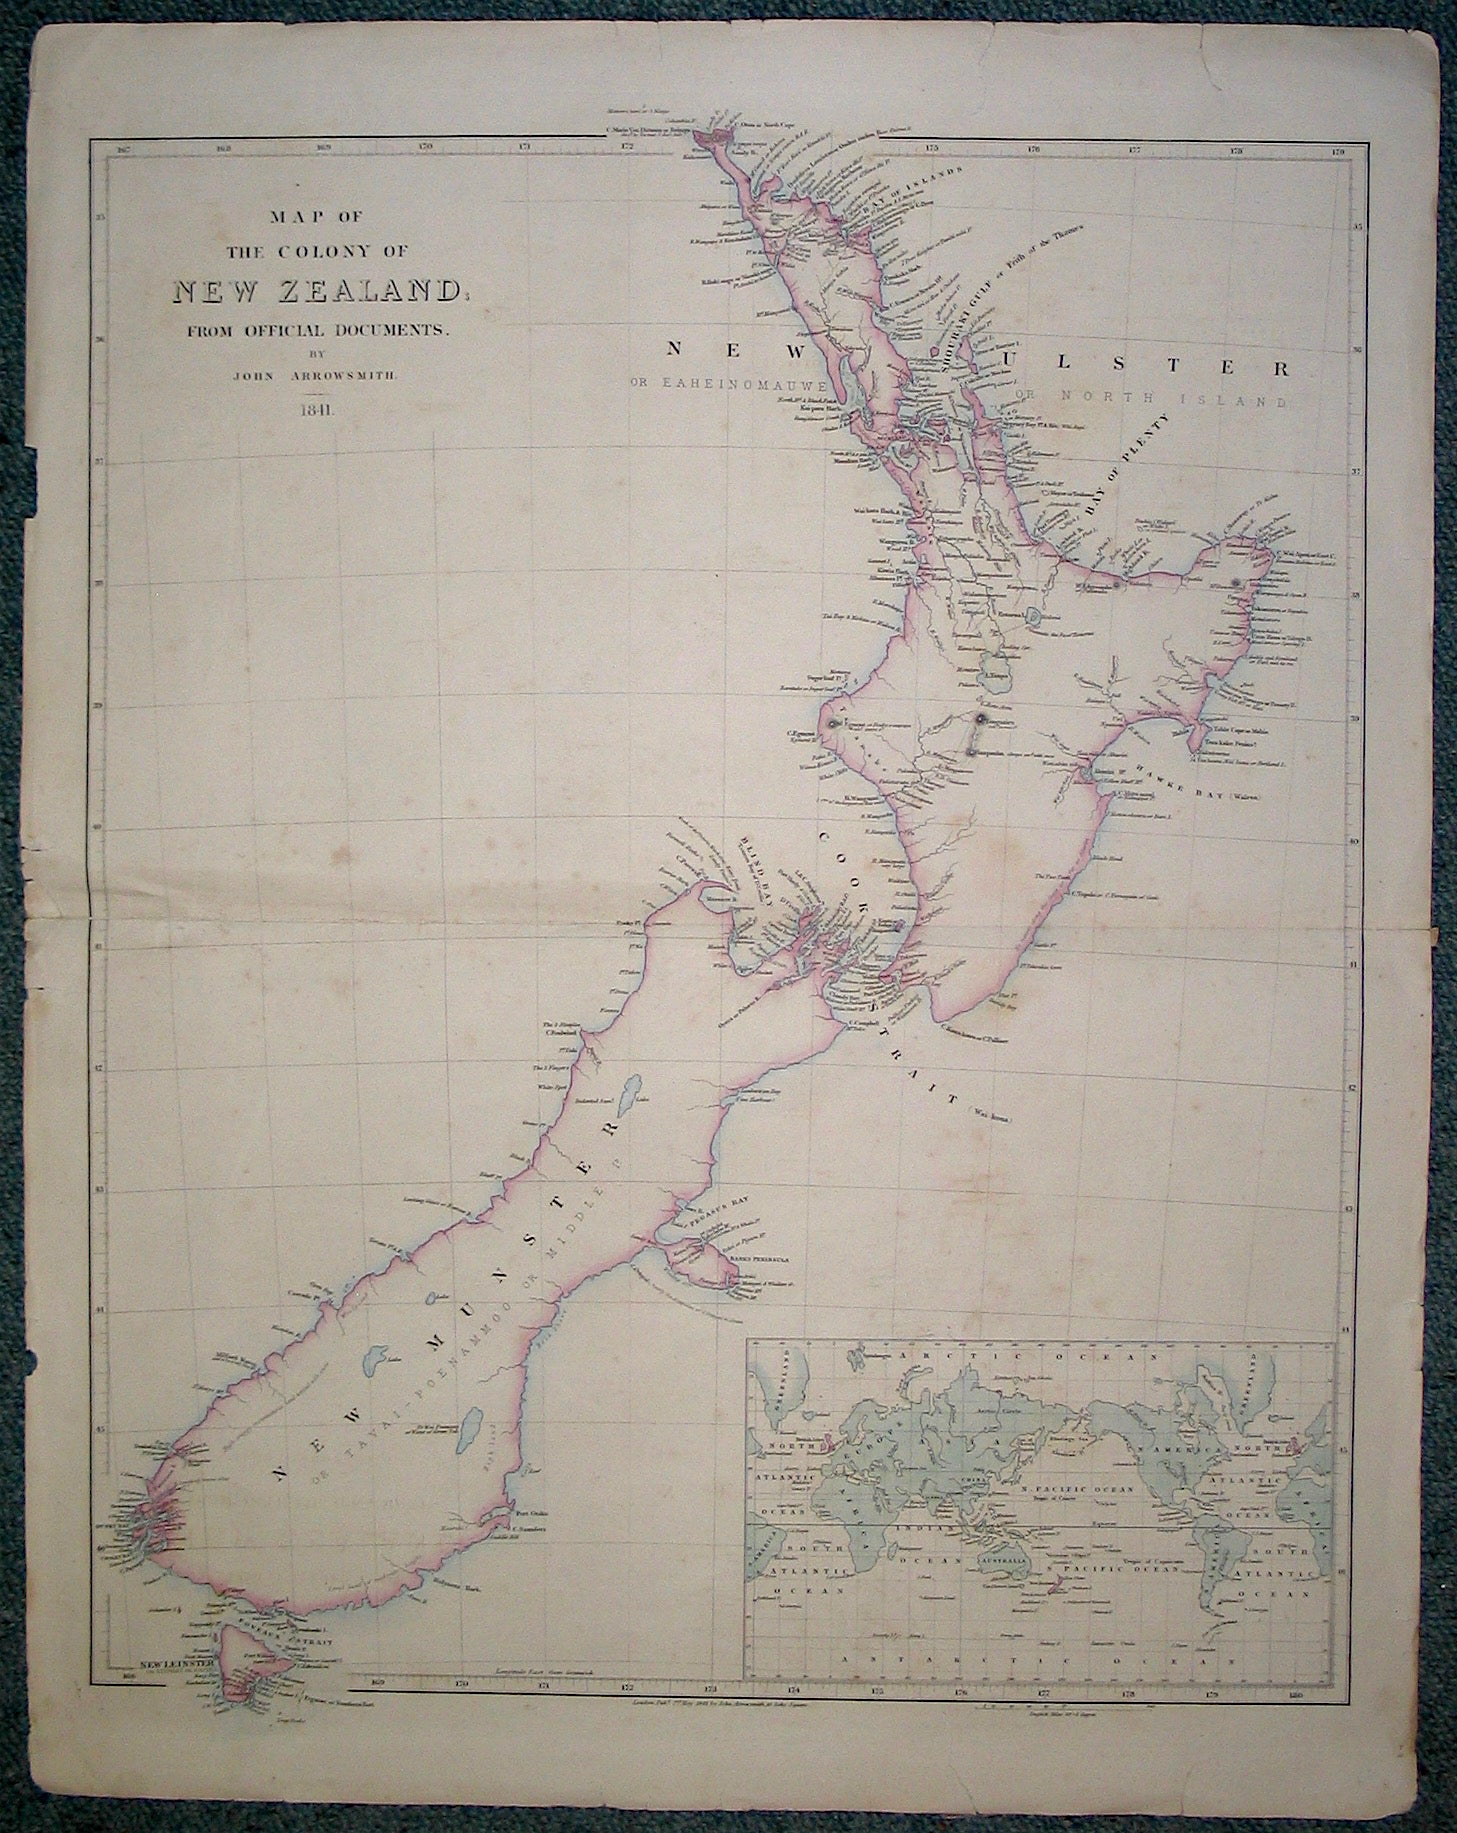 Map of the colony of New Zealand from official documents [folding map]